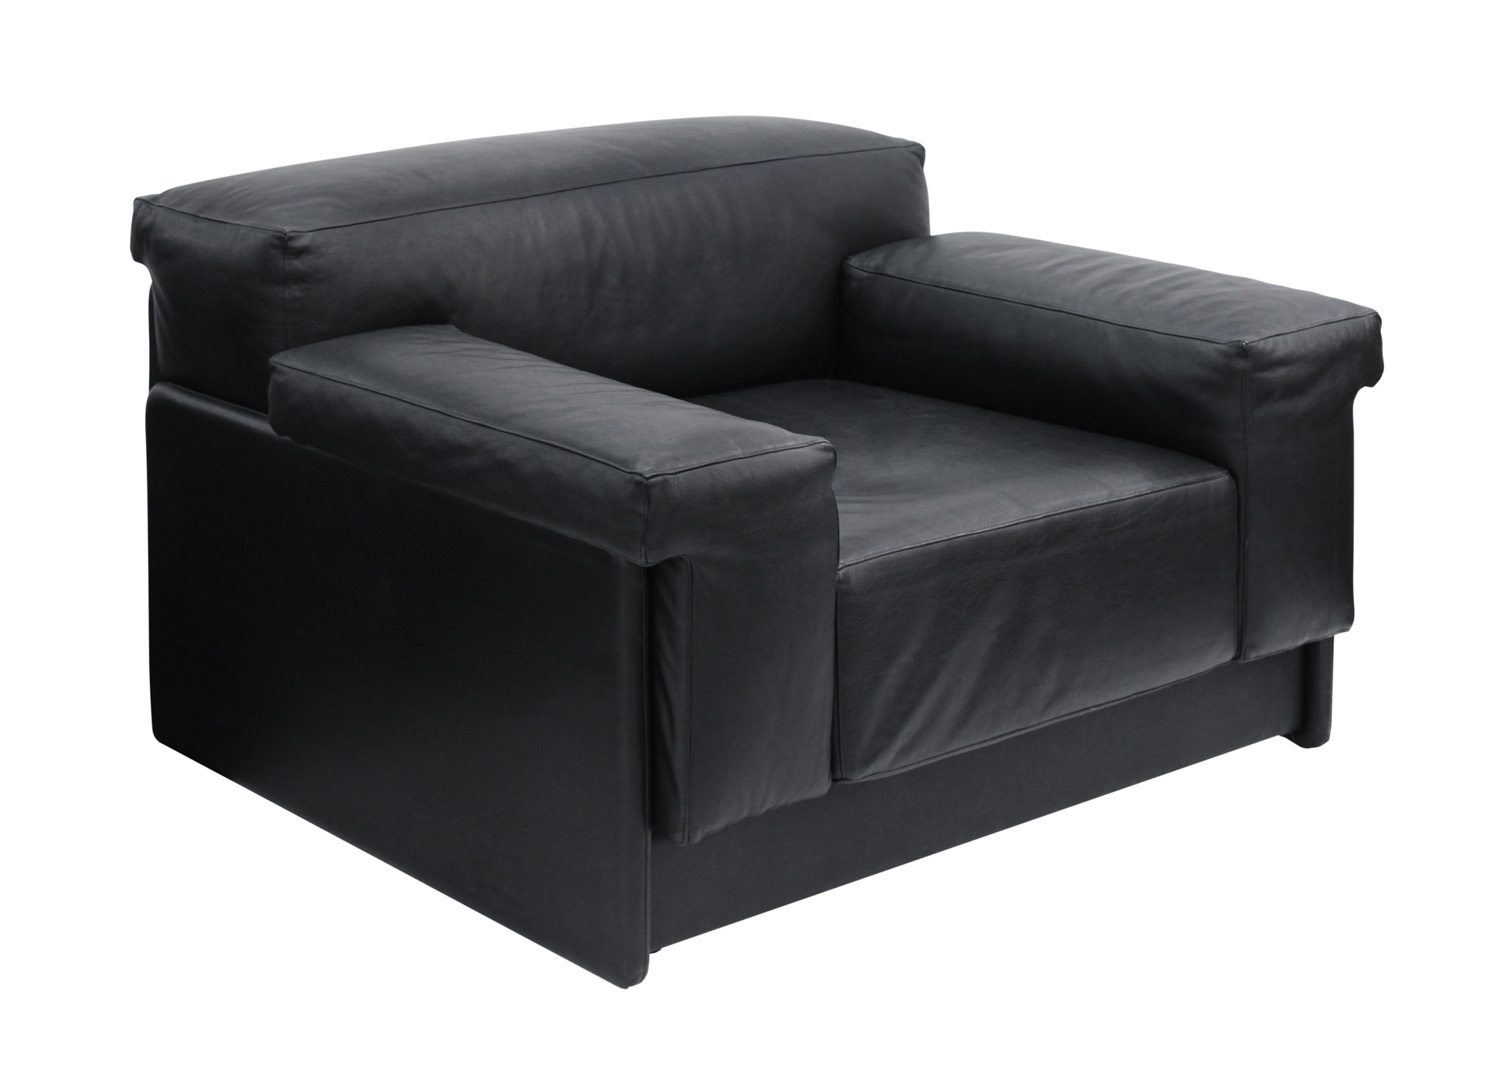 Probber 95 chunky black leather clubchairs46 single hires.jpg